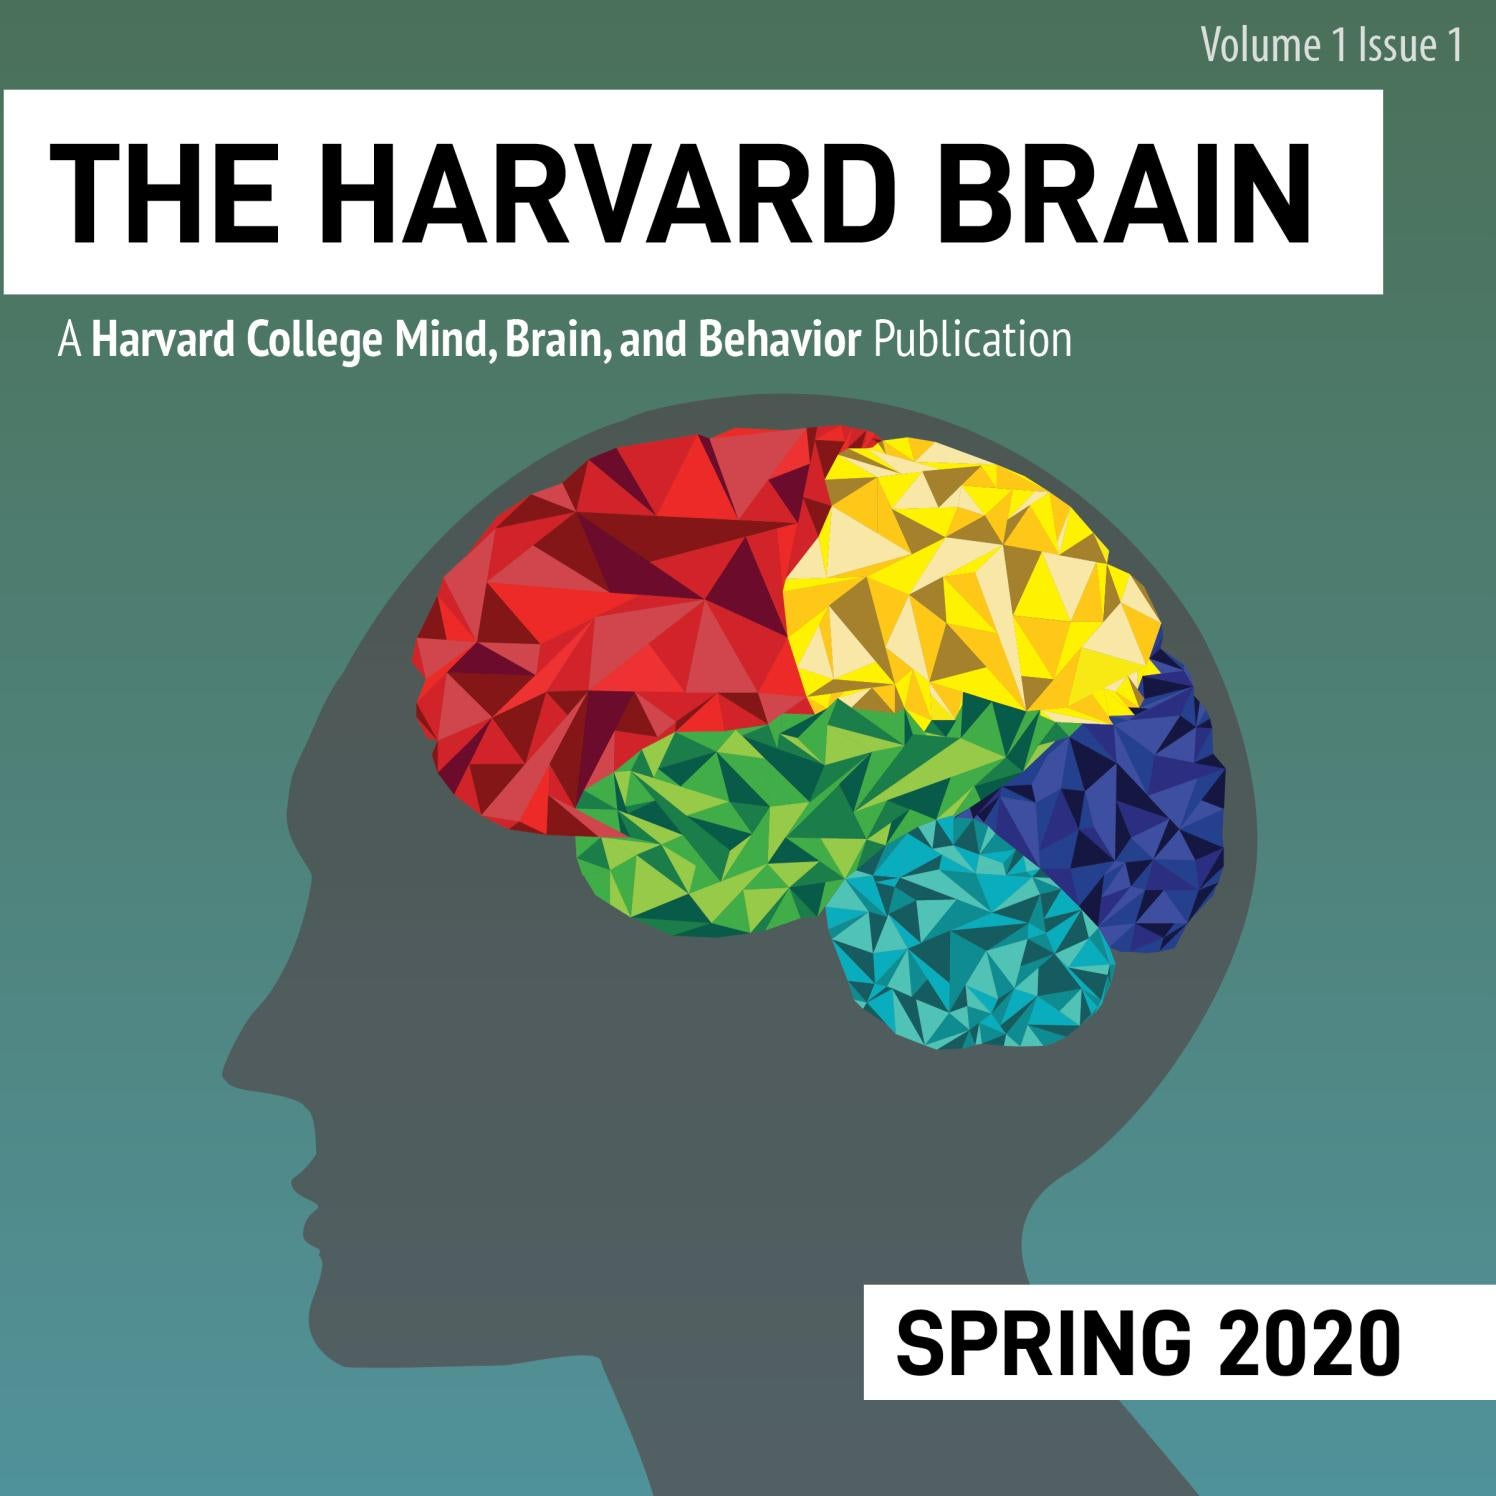 The Harvard Brain Spring 2020 By Theharvardbrain Issuu Semantic scholar profile for elliot choi, with 2 highly influential citations and 5 scientific research papers. the harvard brain spring 2020 by